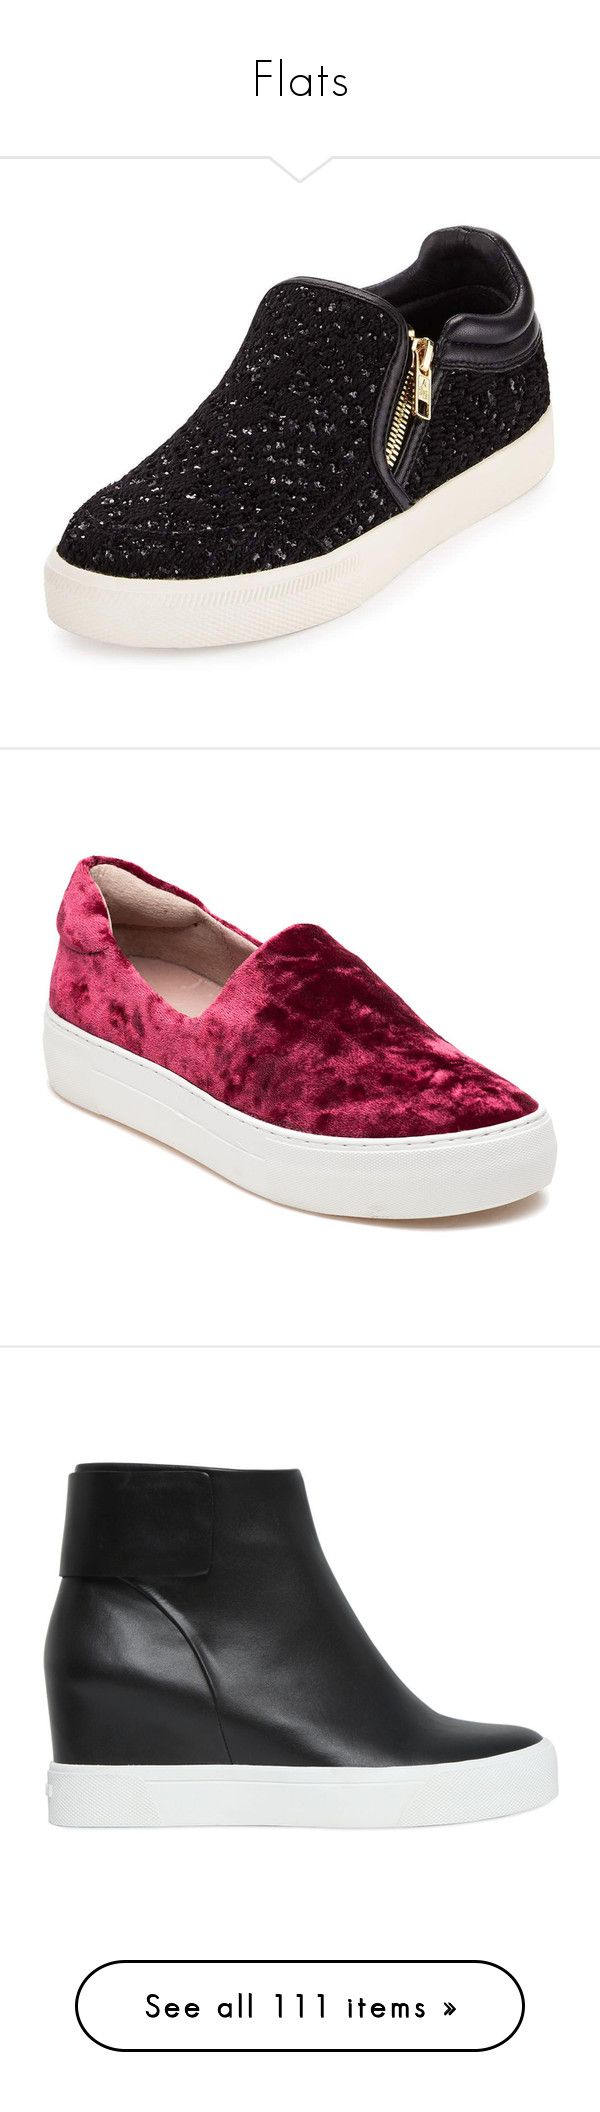 """""""Flats"""" by sailorjerri ❤ liked on Polyvore featuring shoes, sneakers, flats, golden shoes, ash sneakers, round cap, sequin shoes, platform shoes, burgundy velvet and velvet platform shoes                                                                                                                                                                                 More"""